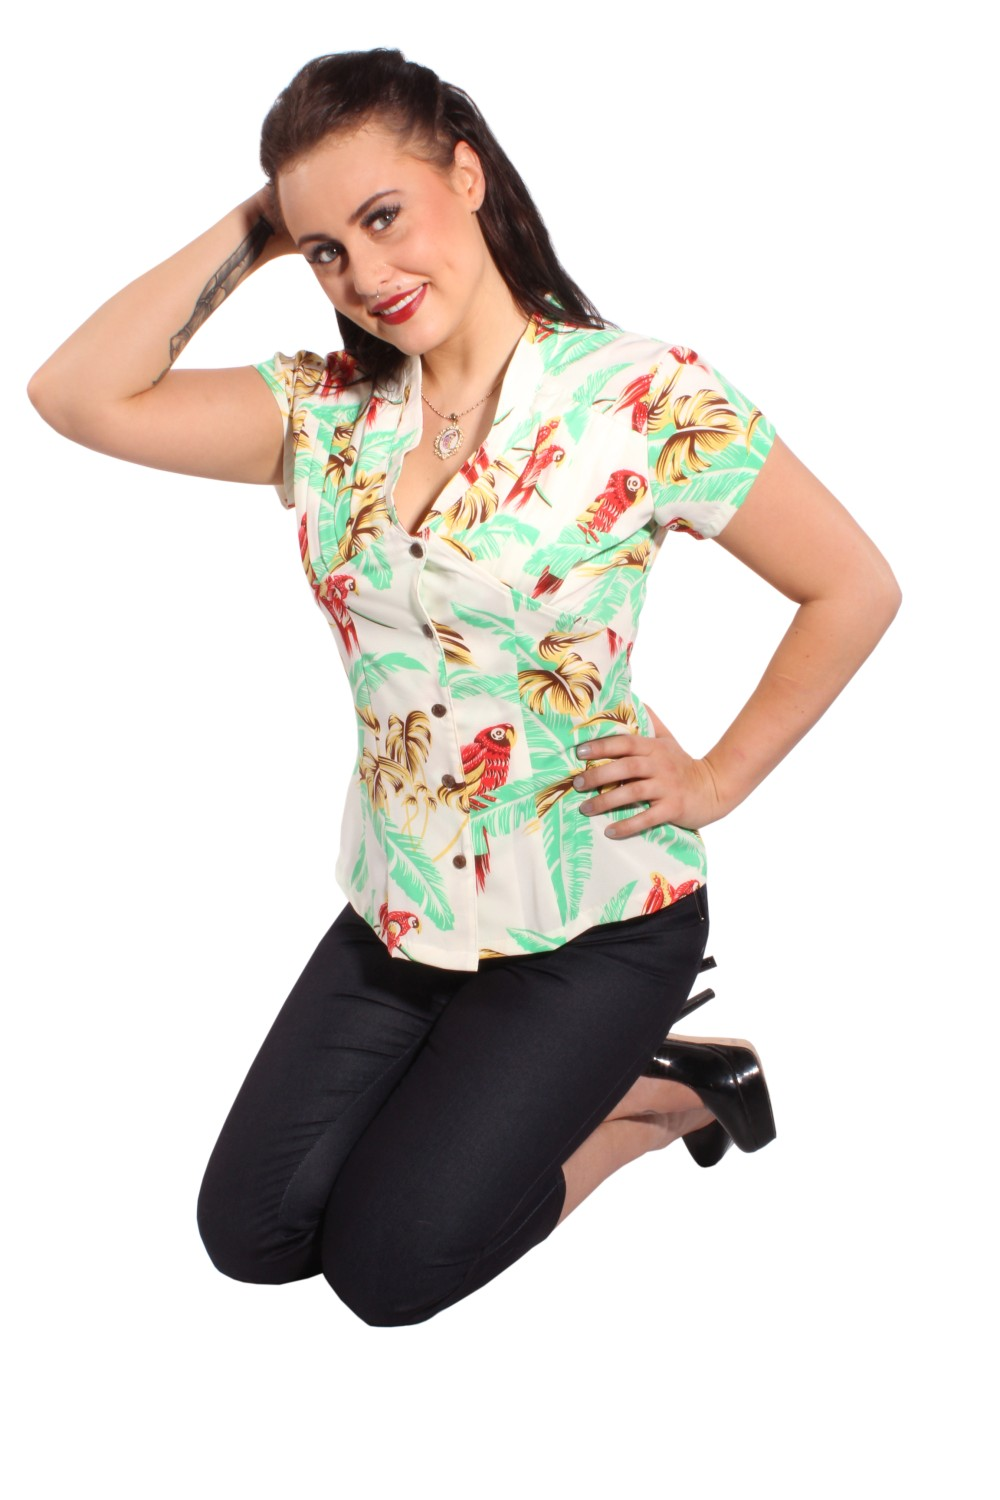 40s HAWAII PIN UP retro rockabilly Papagei Palmen Plissee Bluse